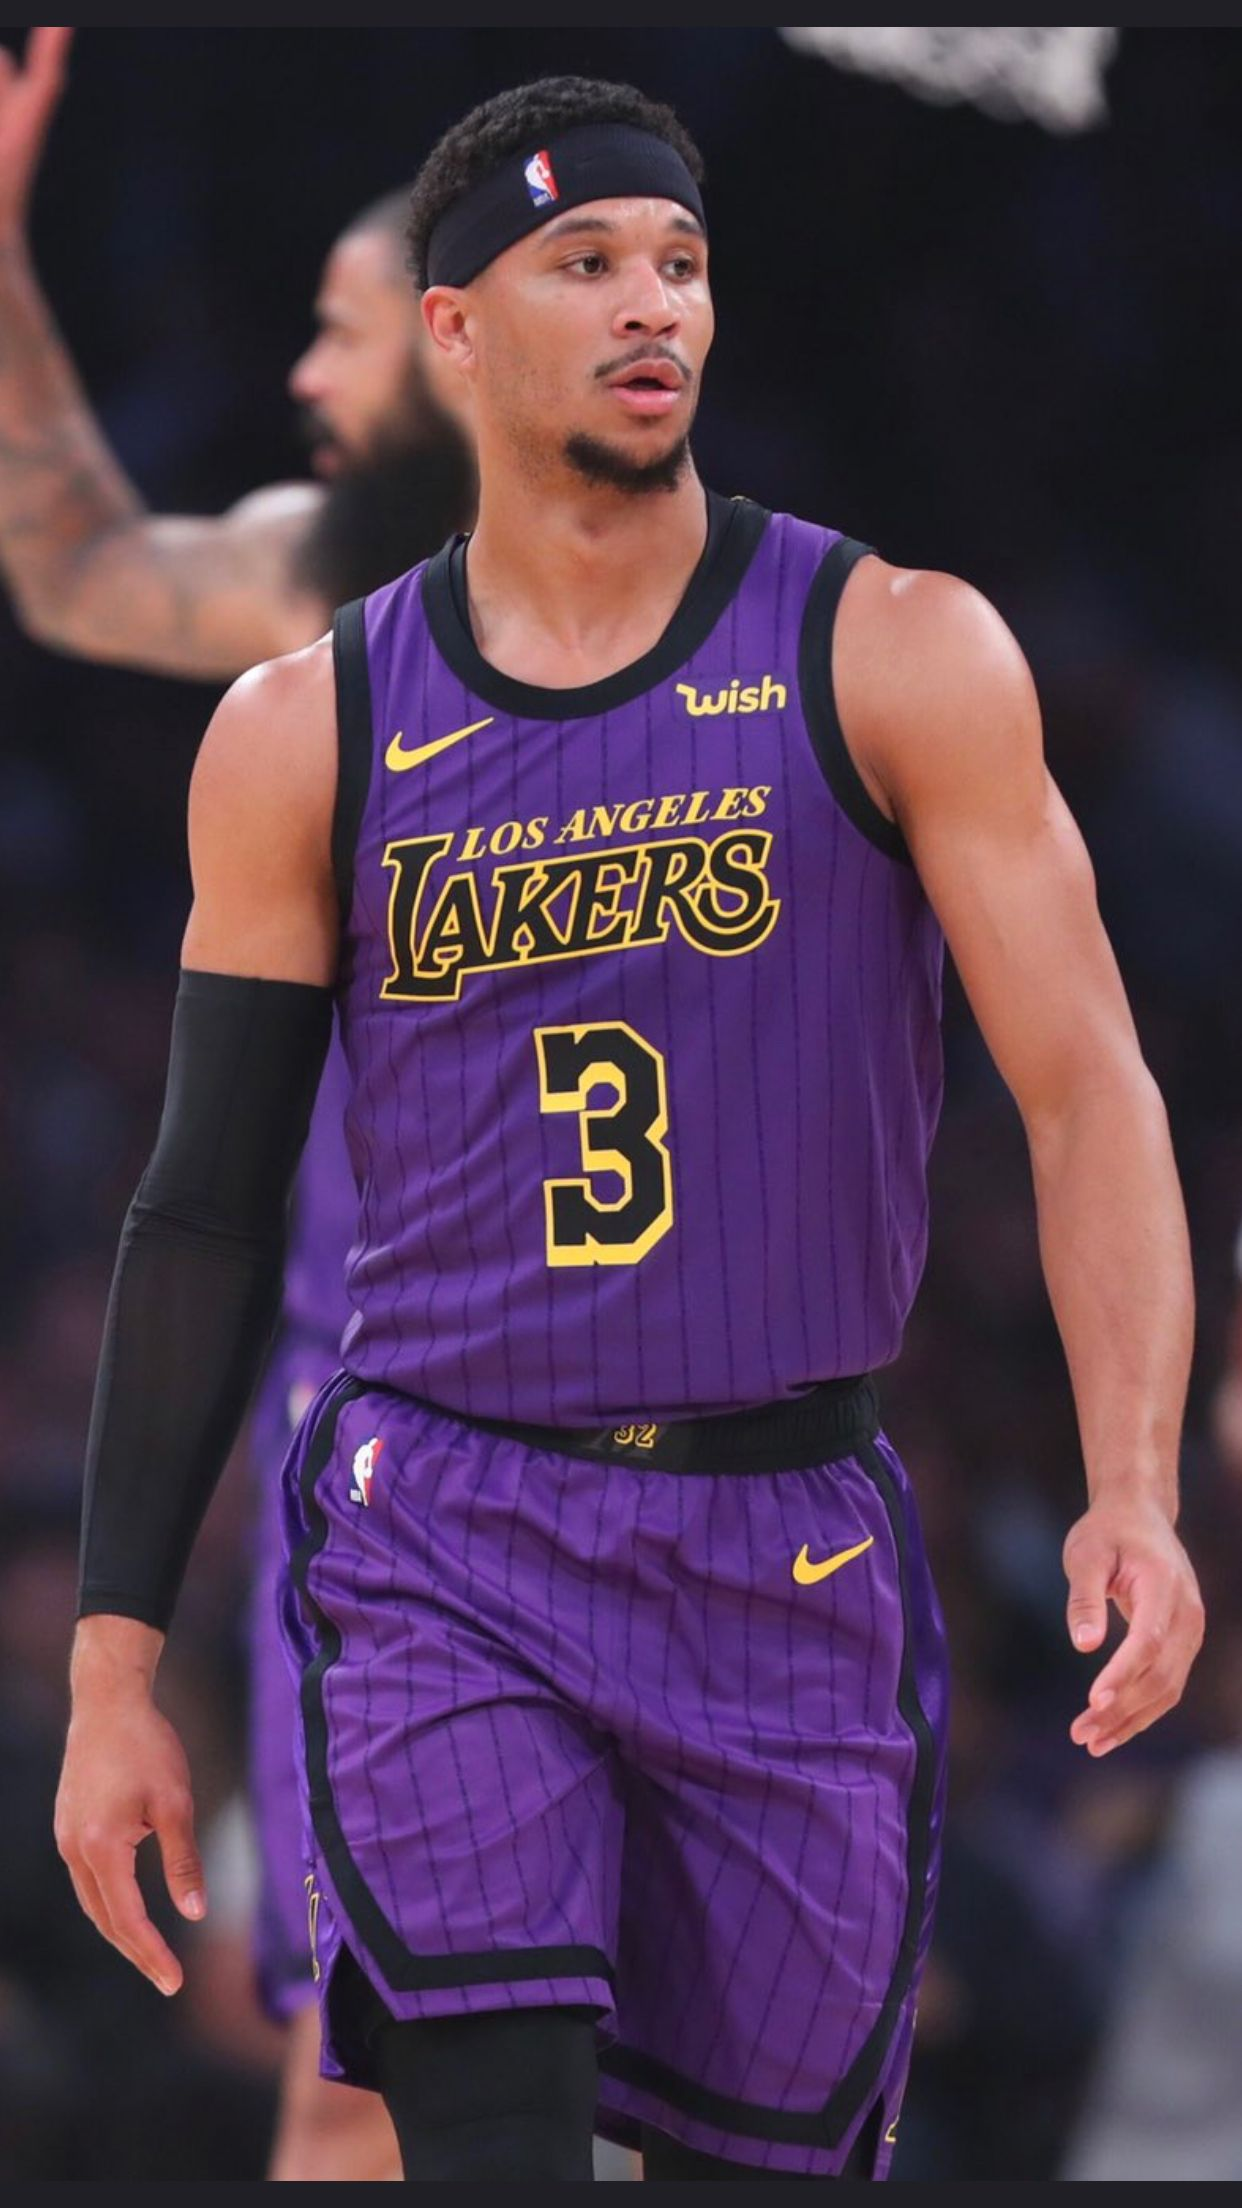 Pin on Lakers